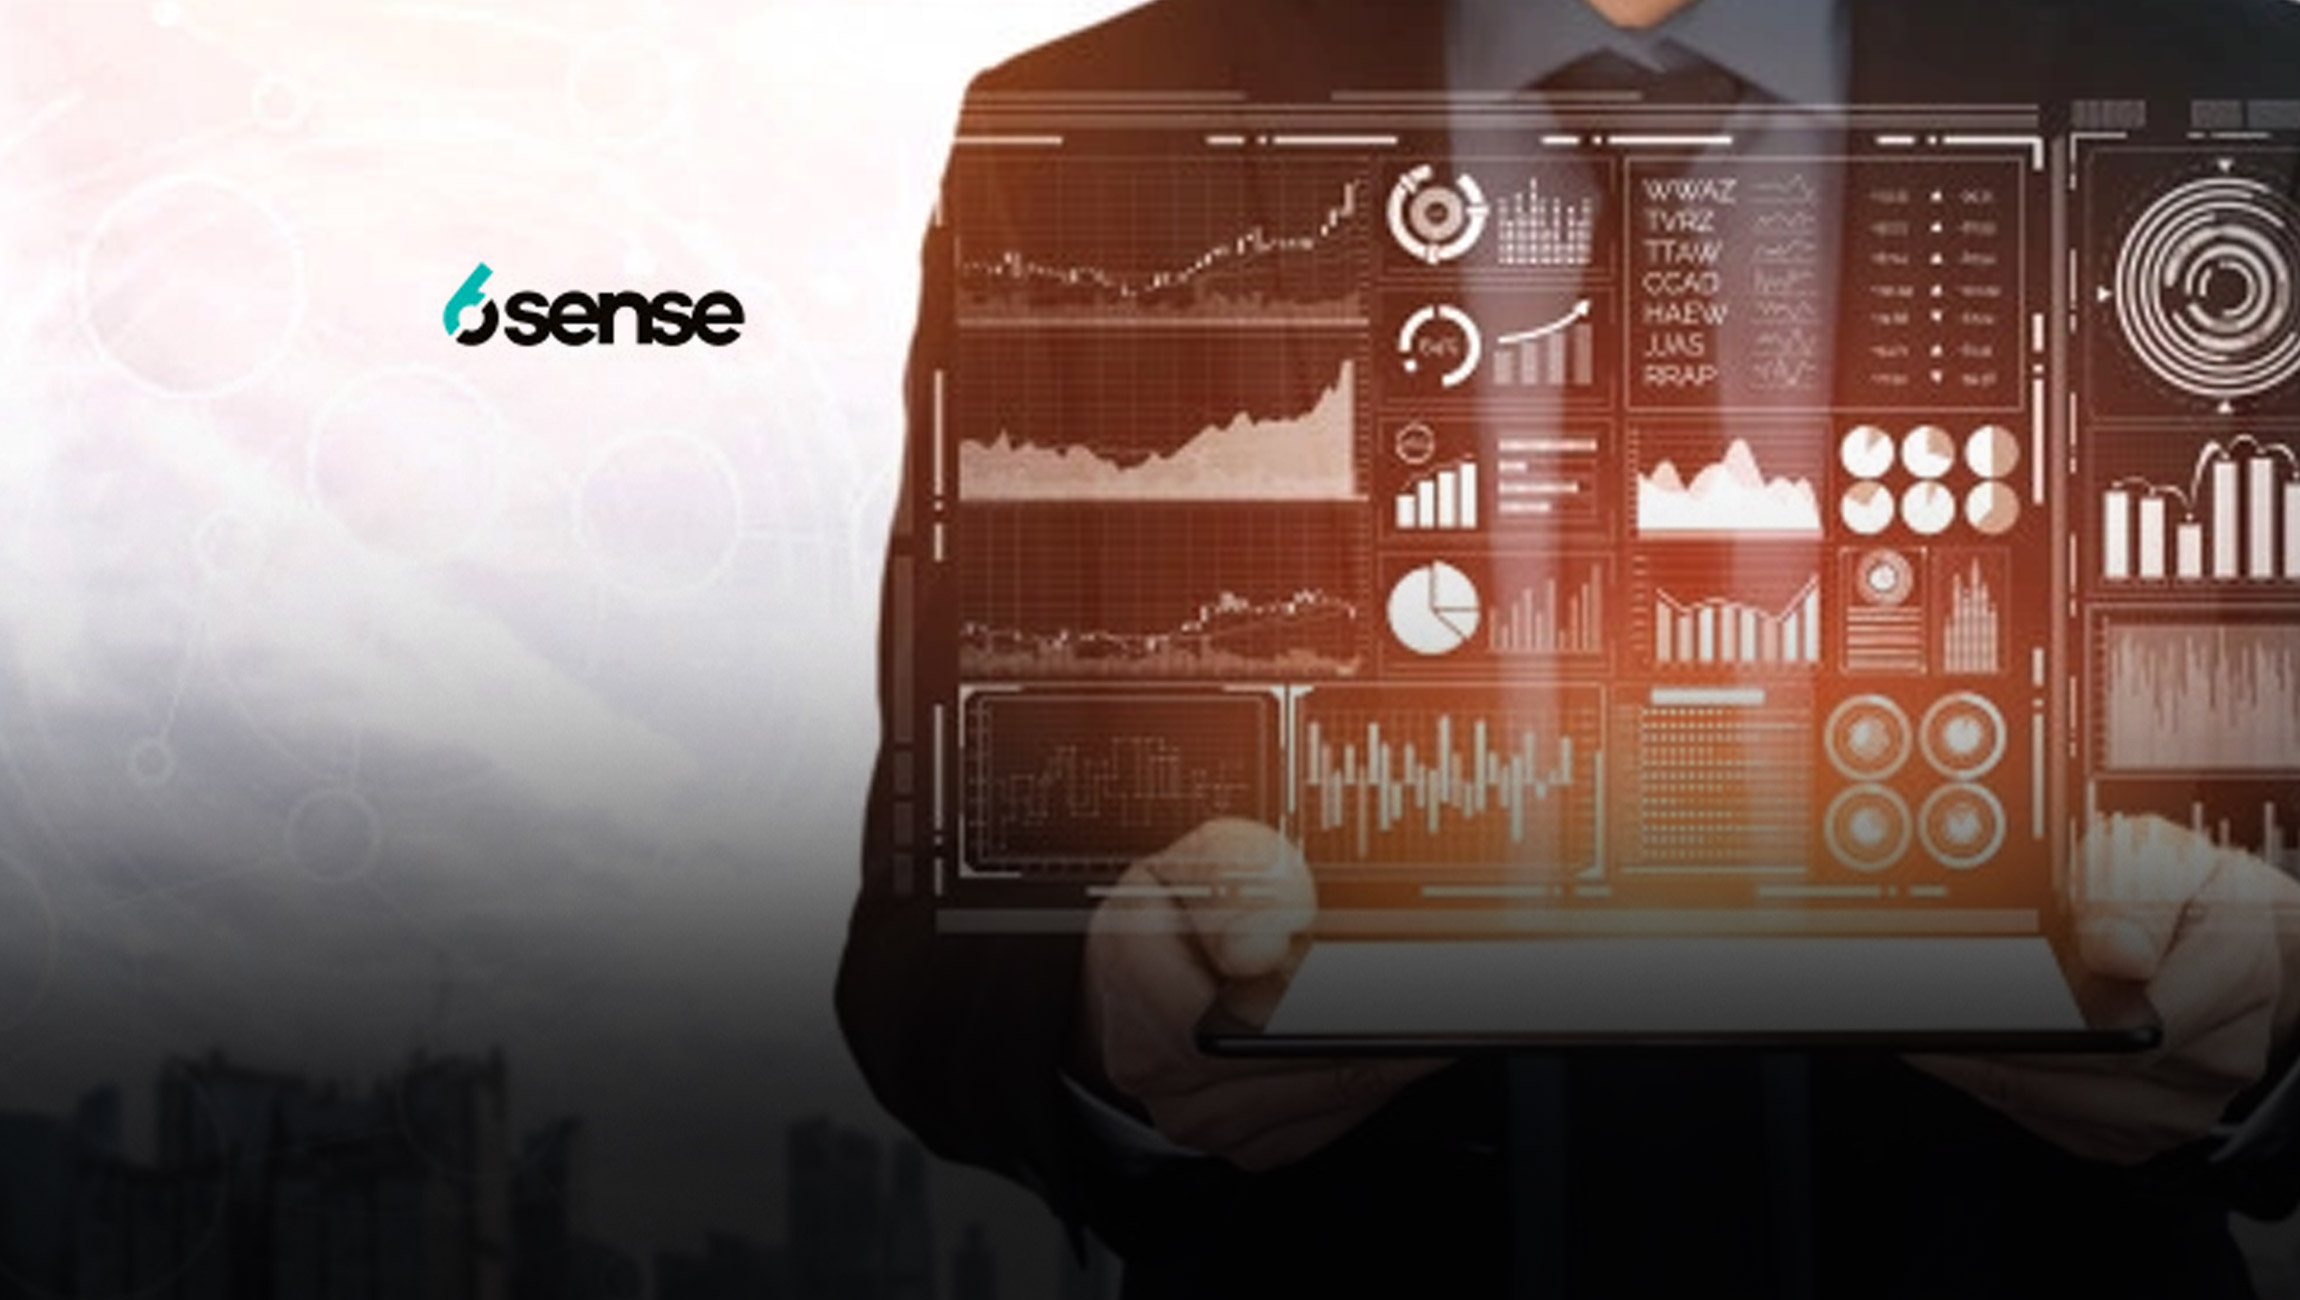 6sense Launches 6signal Graph to Power Personalization for Sales and Martech Providers